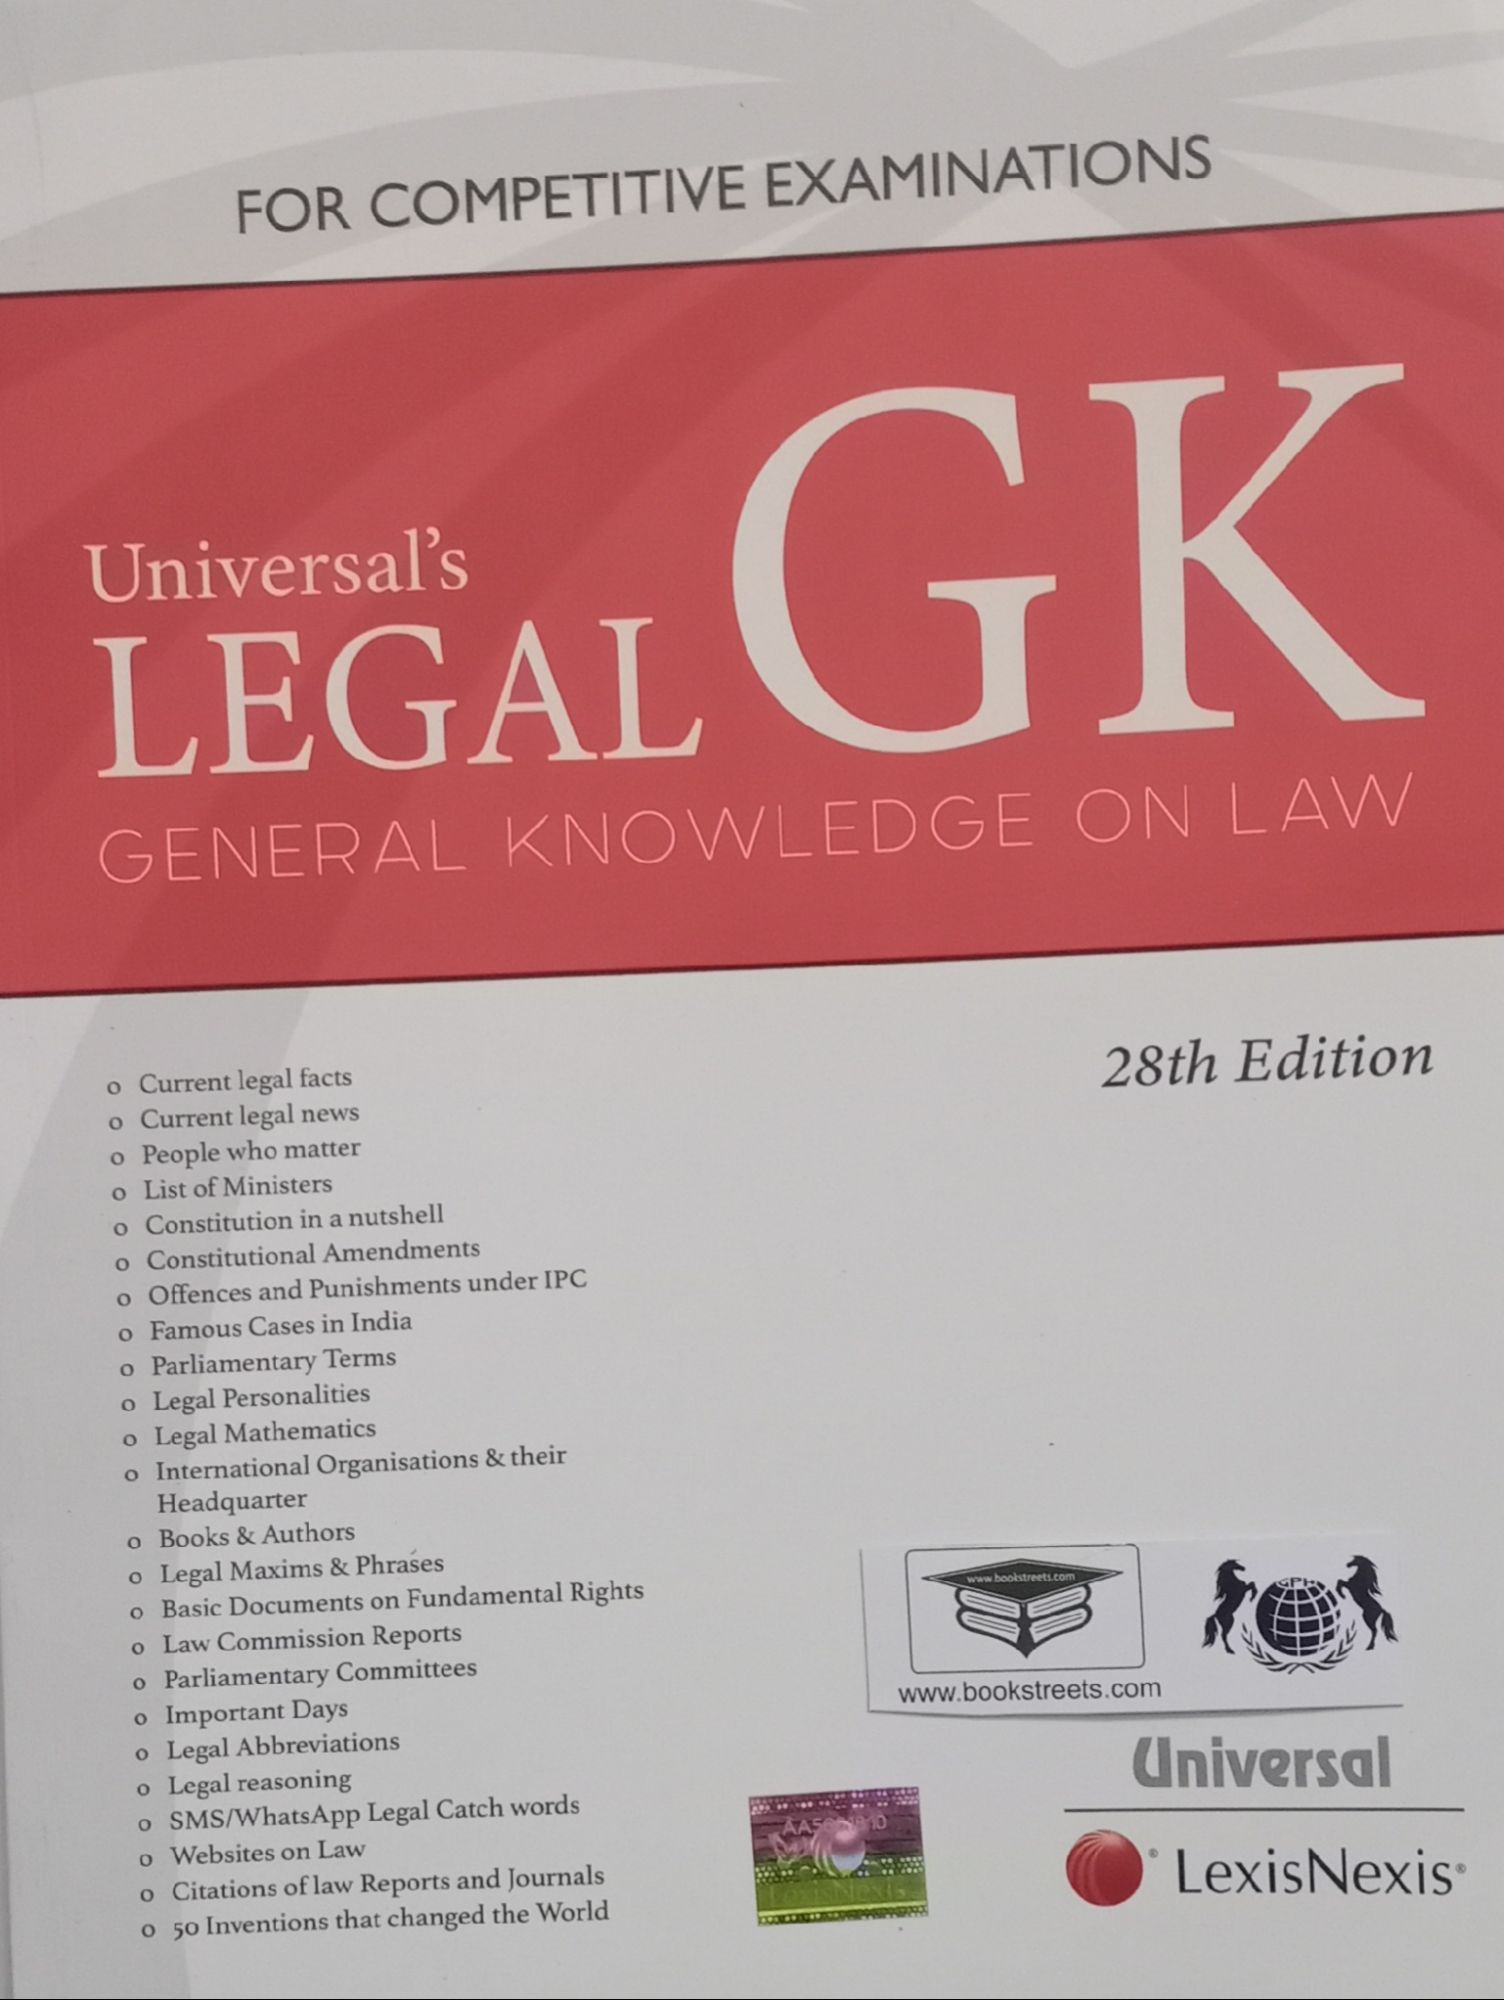 Universal's Legal GK General Knowledge On Law by Universal LexisNexis